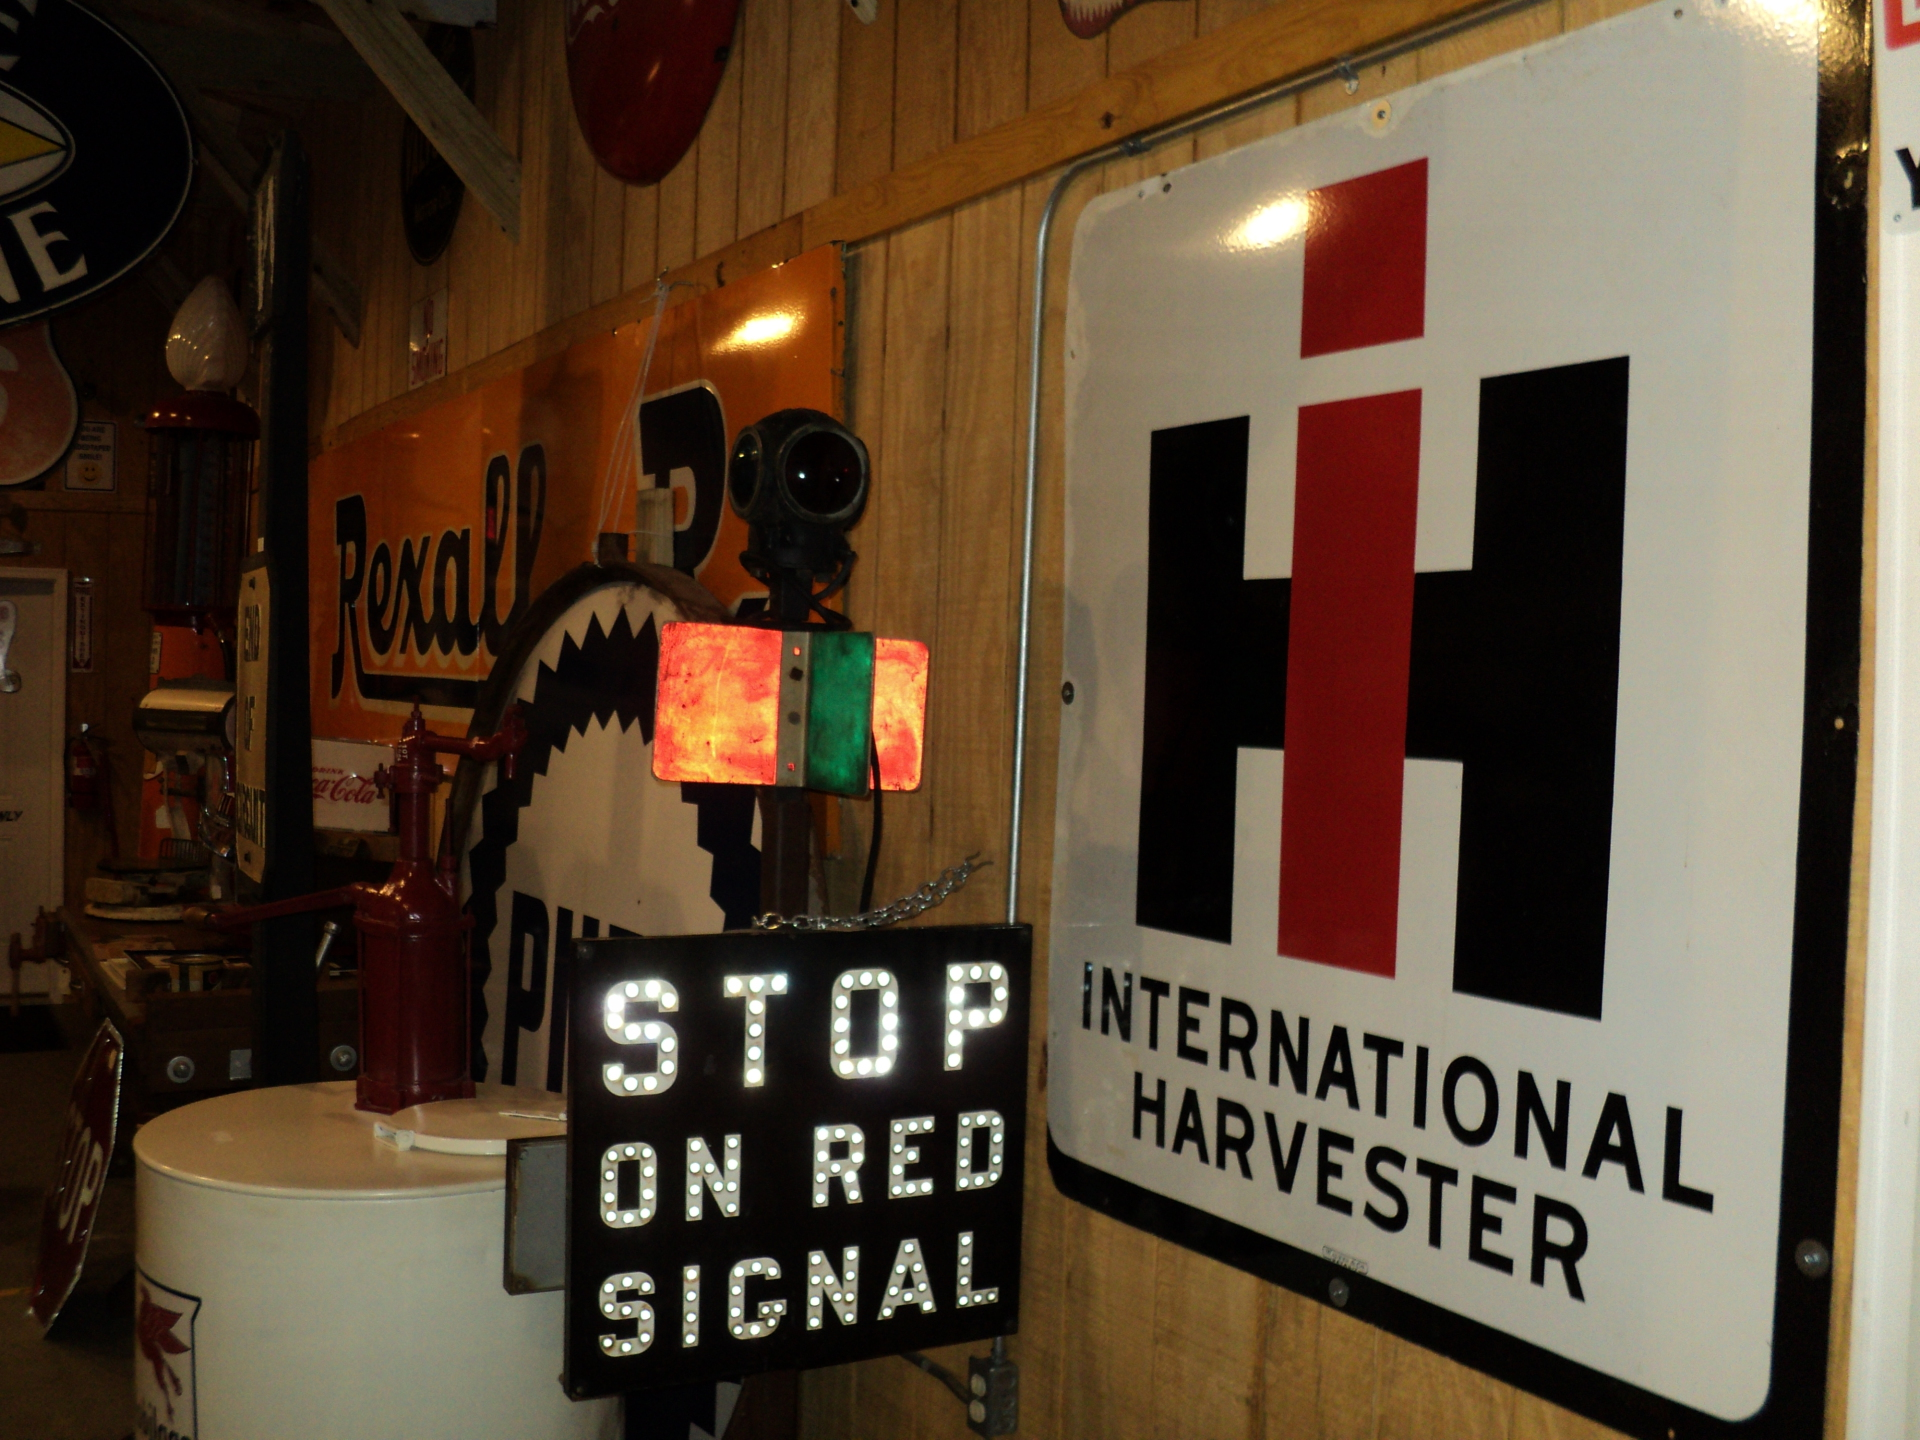 Very Rare International Harvester Sign